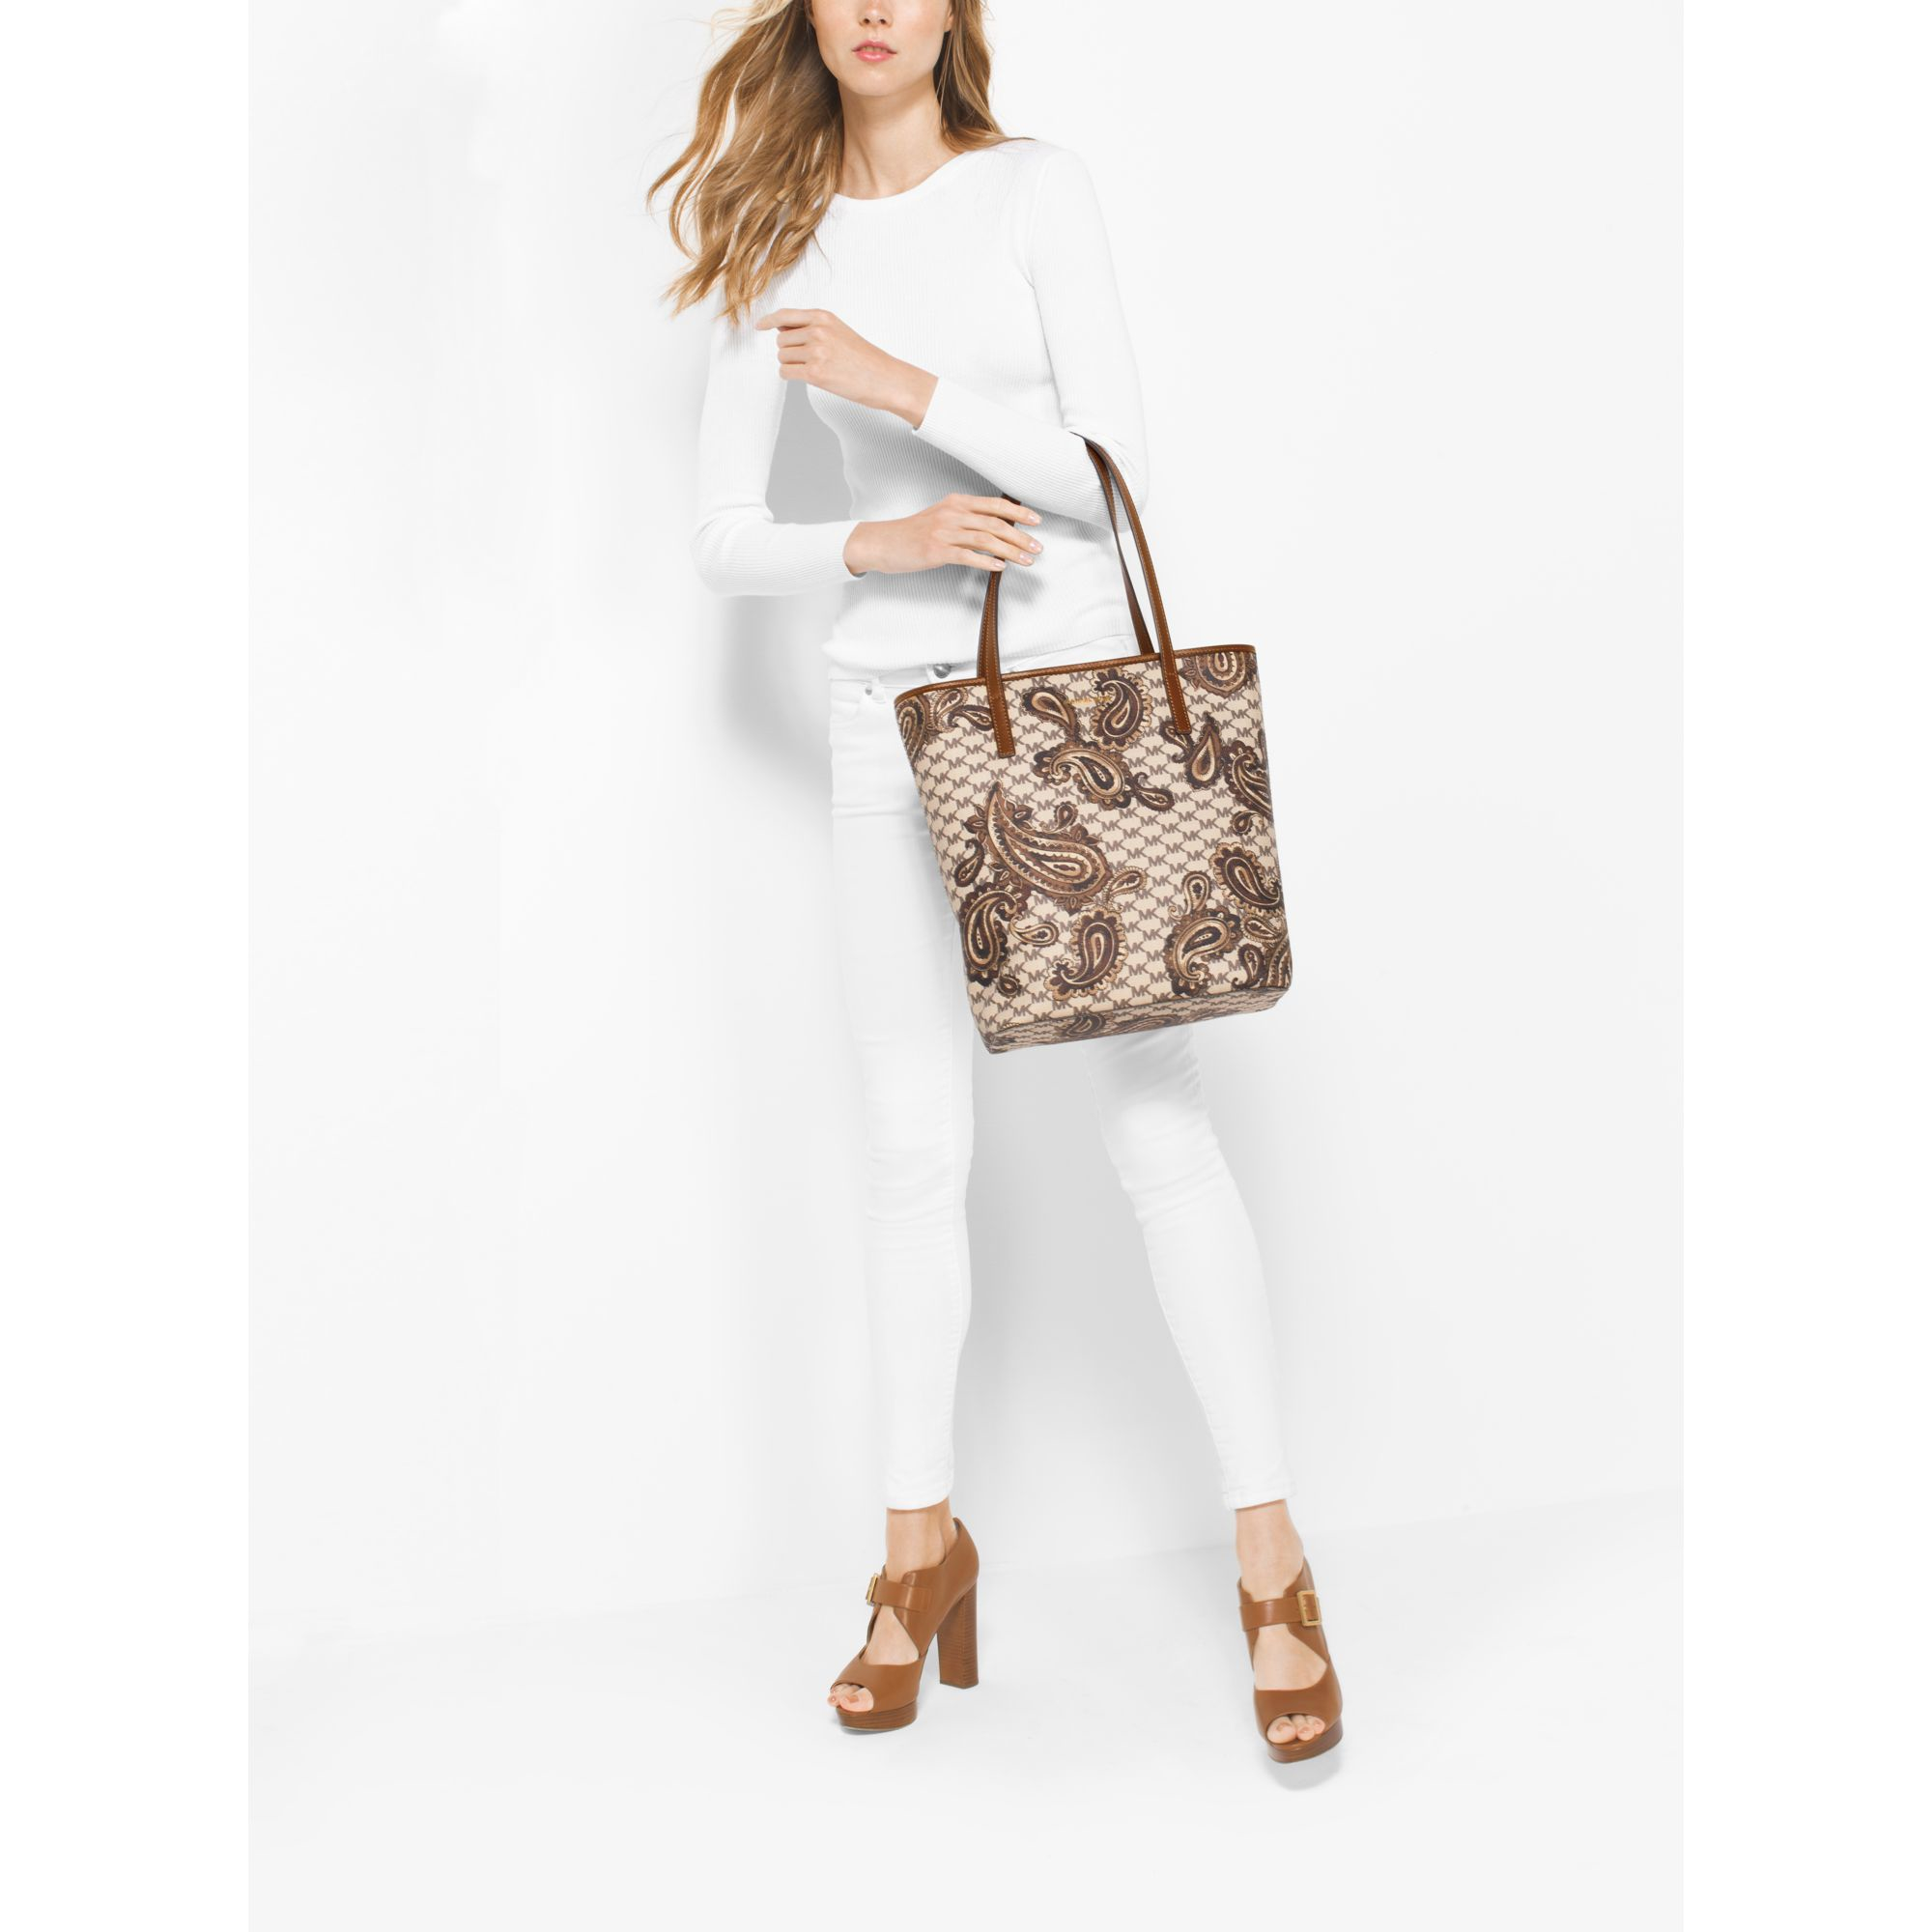 447137a4dd0f Michael Kors Emry Large North/south Heritage Paisley Tote in Natural ...